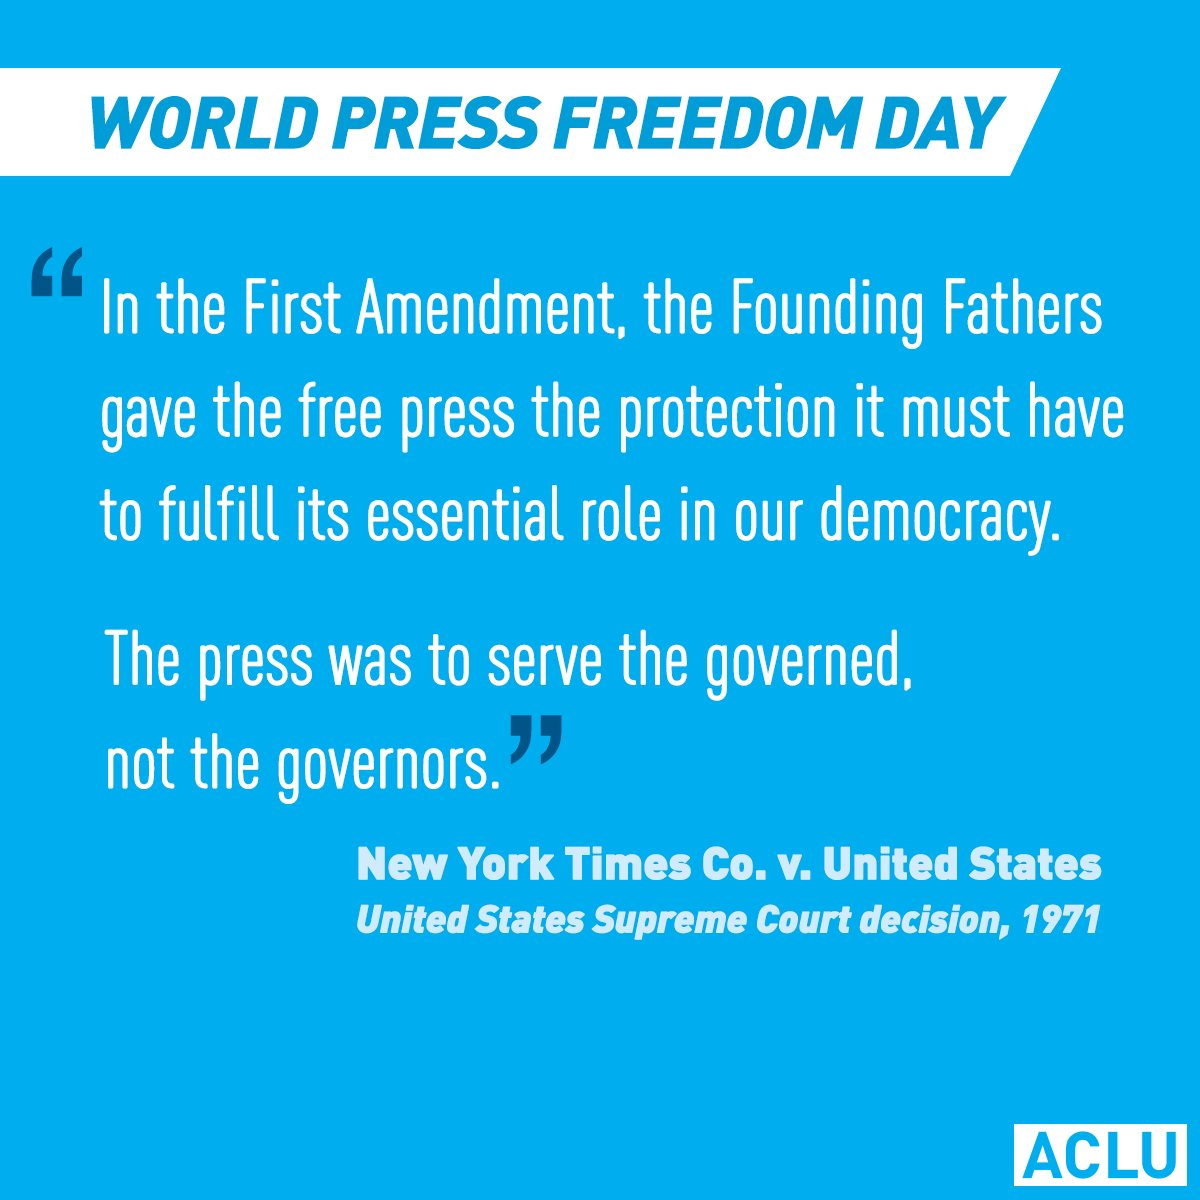 On #WorldPressFreedomDay we remember the press was to serve the governed, not the governors.